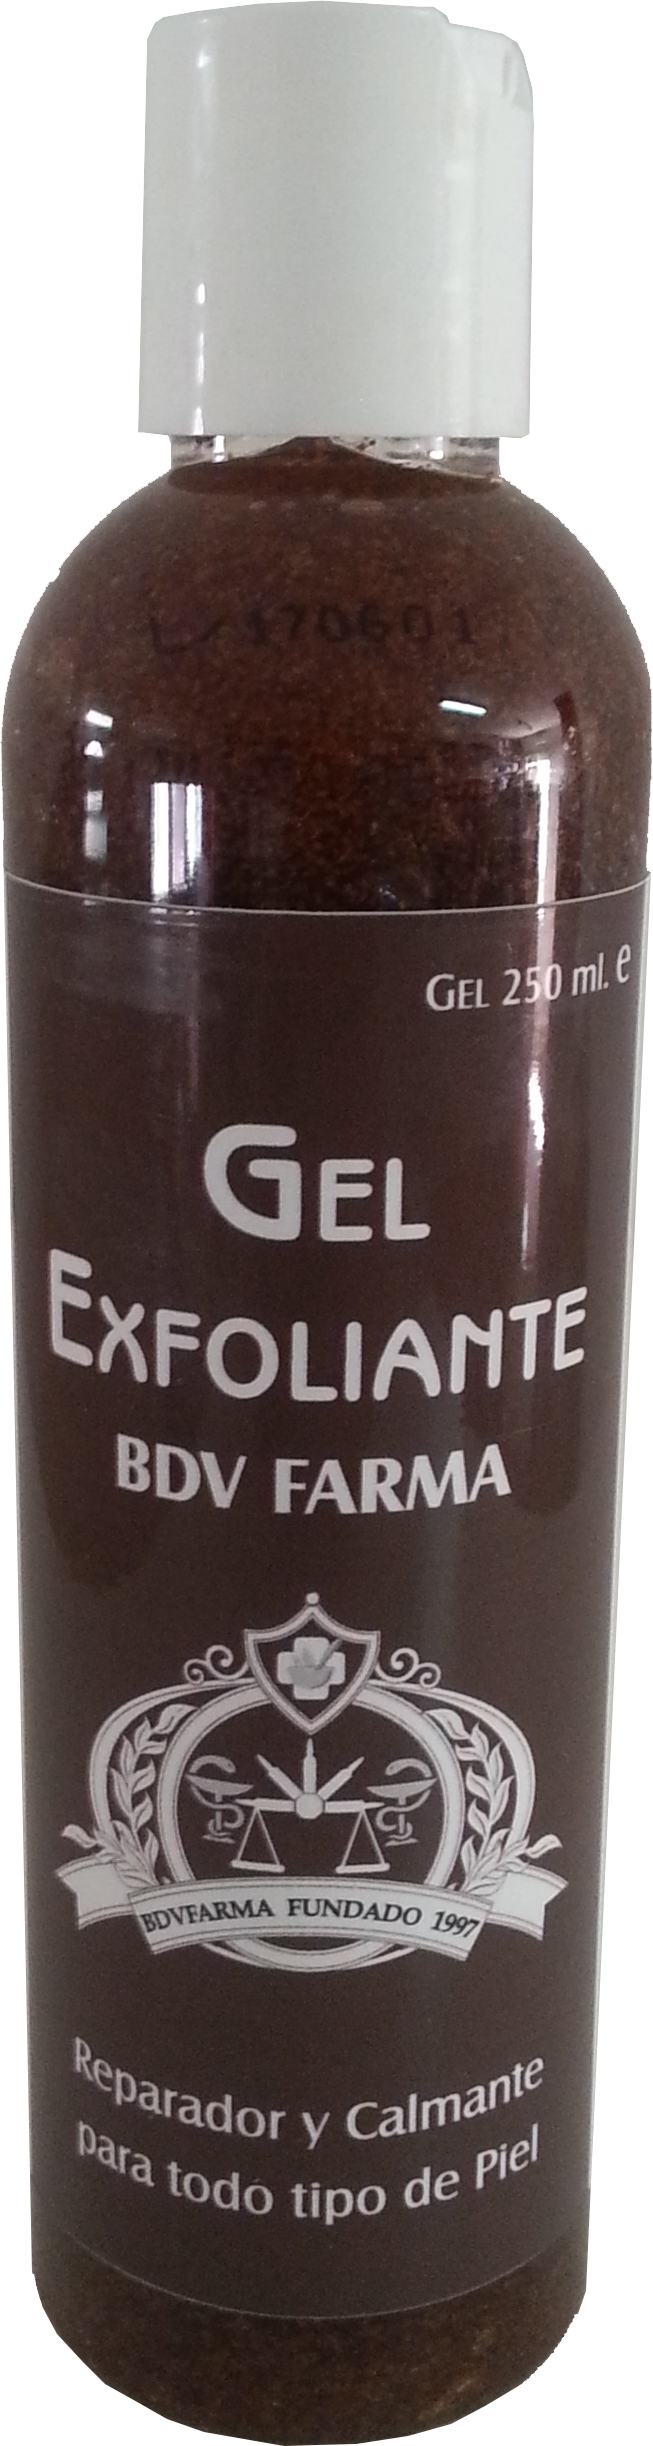 BDV FARMA GEL EXFOLIANTE